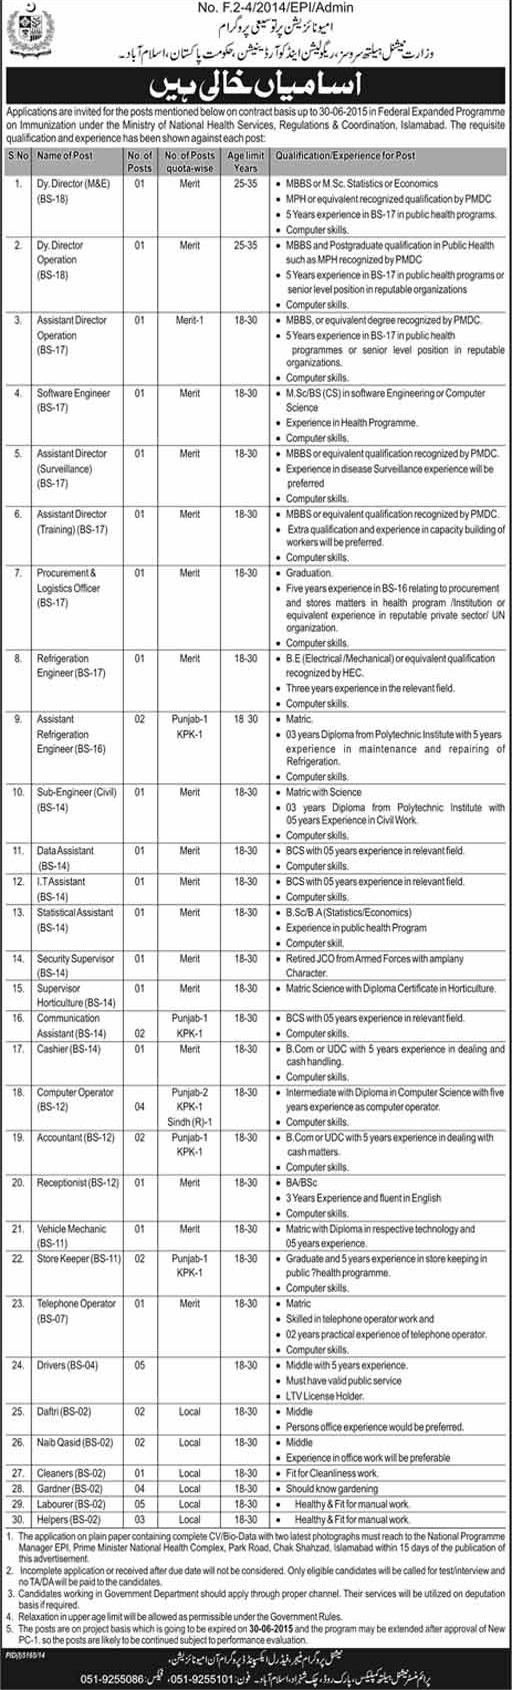 Posts in Ministry of National Health Services, Regulation and Coordination GoP Islamabad